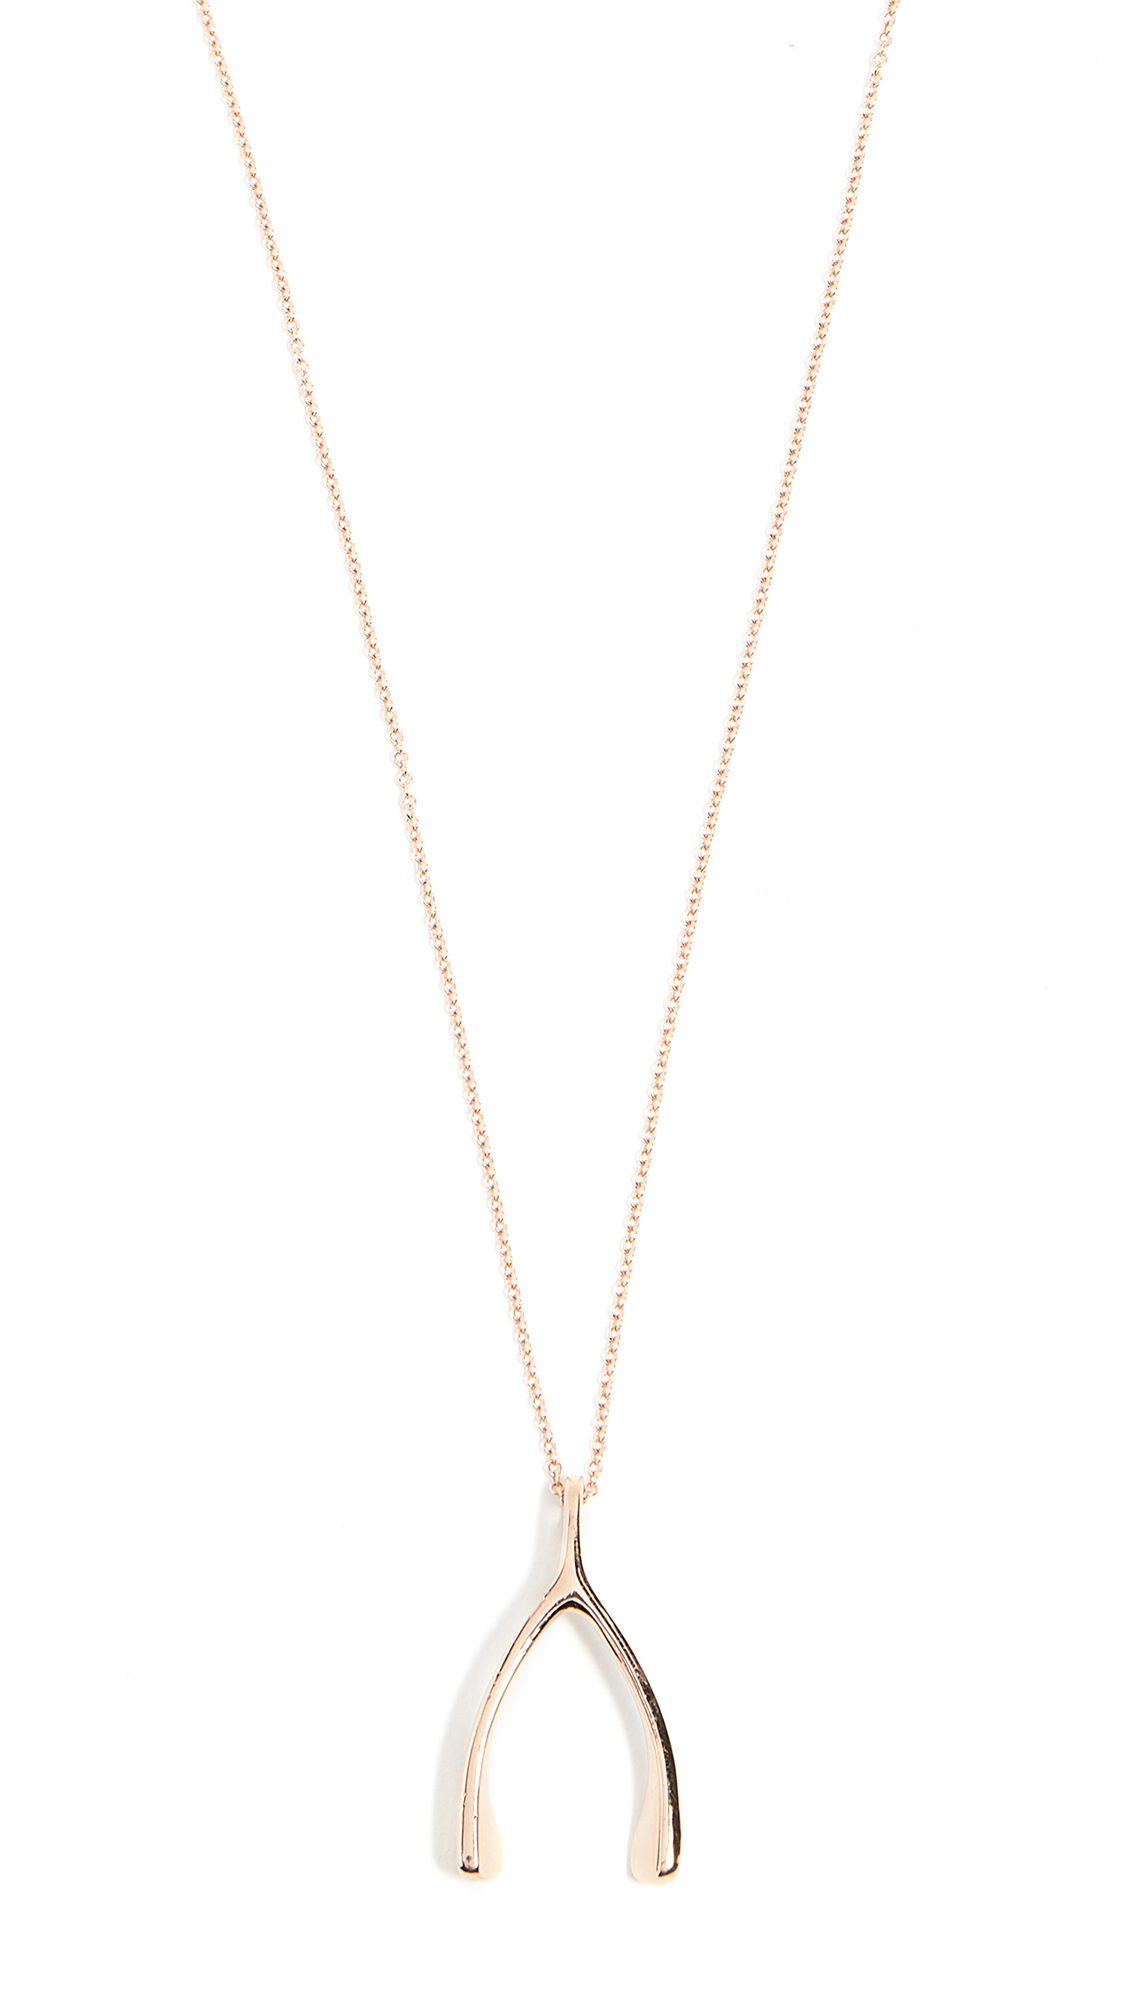 Jennifer Meyer Jewelry 18k Rose Gold Wishbone Necklace - Rose Gold